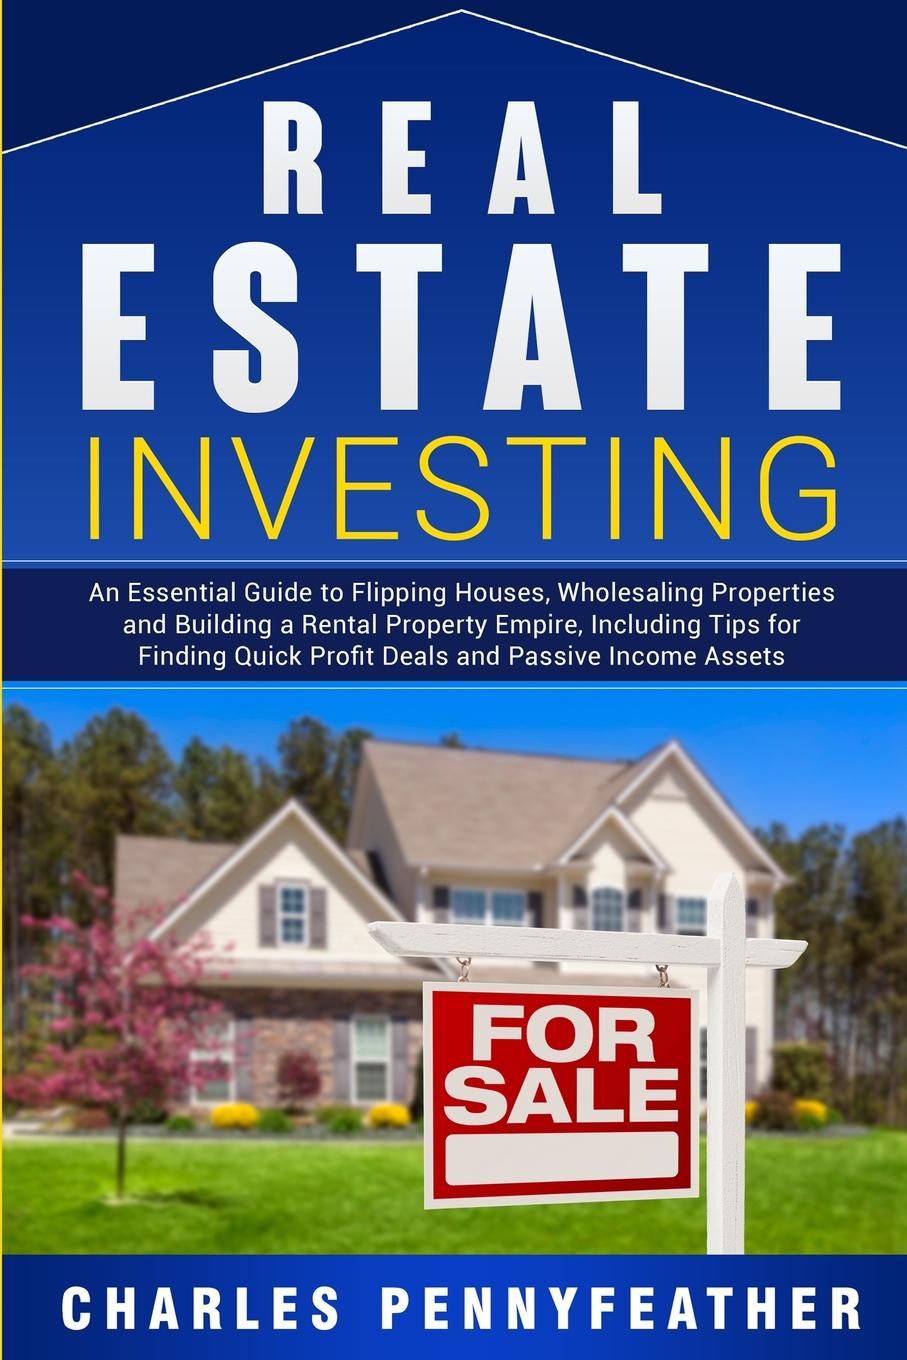 Фото - Charles Pennyfeather Real Estate Investing. An Essential Guide to Flipping Houses, Wholesaling Properties and Building a Rental Property Empire, Including Tips for Finding Quick Profit Deals and Passive Income Assets wai yee chen neuroinvesting build a new investing brain